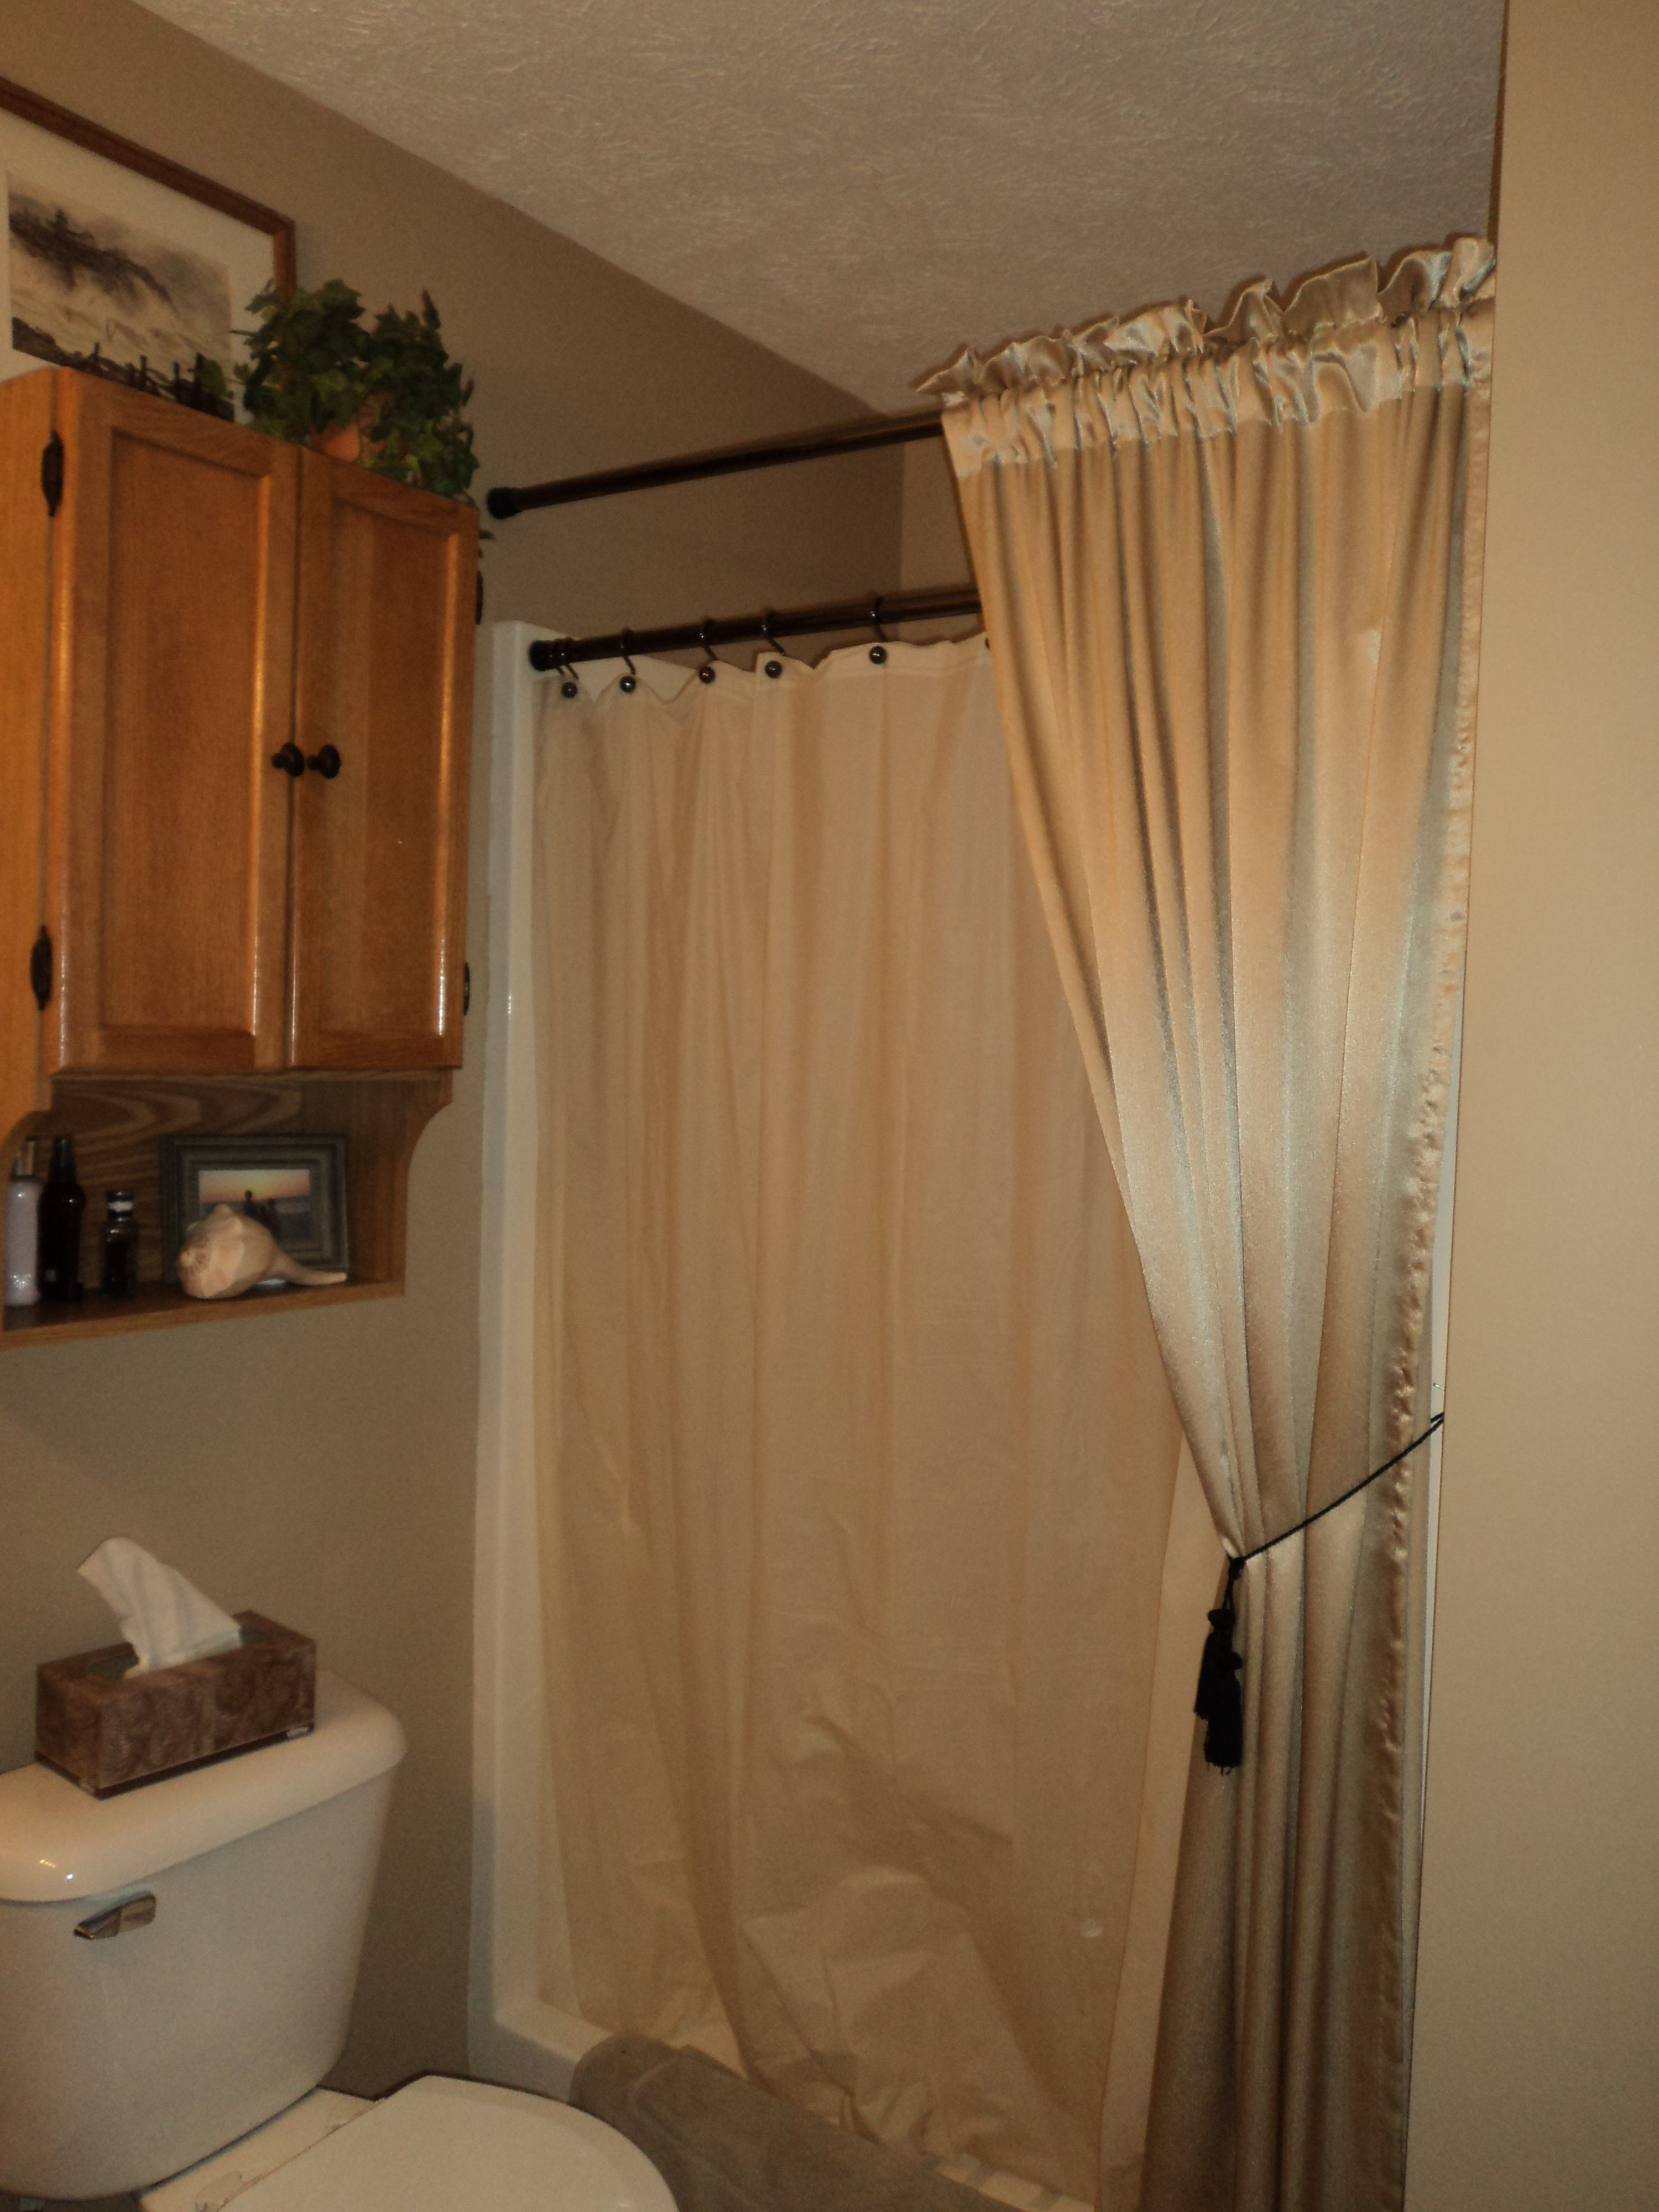 In The Master Bath I Used 2 Shower Rods The Outside One Is The